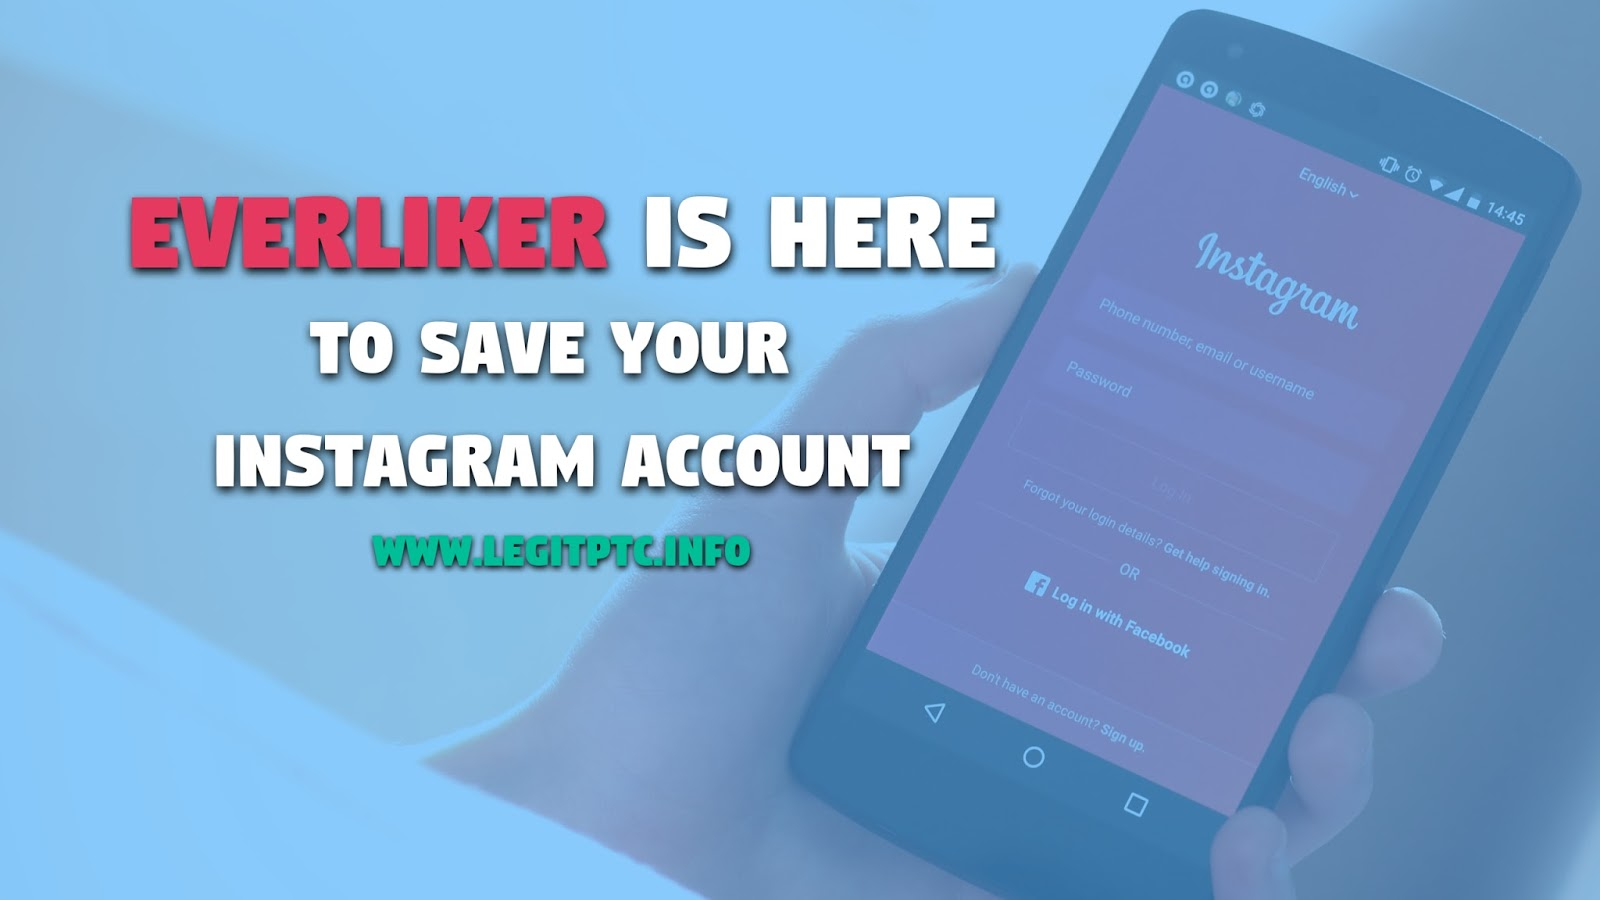 Bring your instagram account to new heights with Everliker | Legit PTC